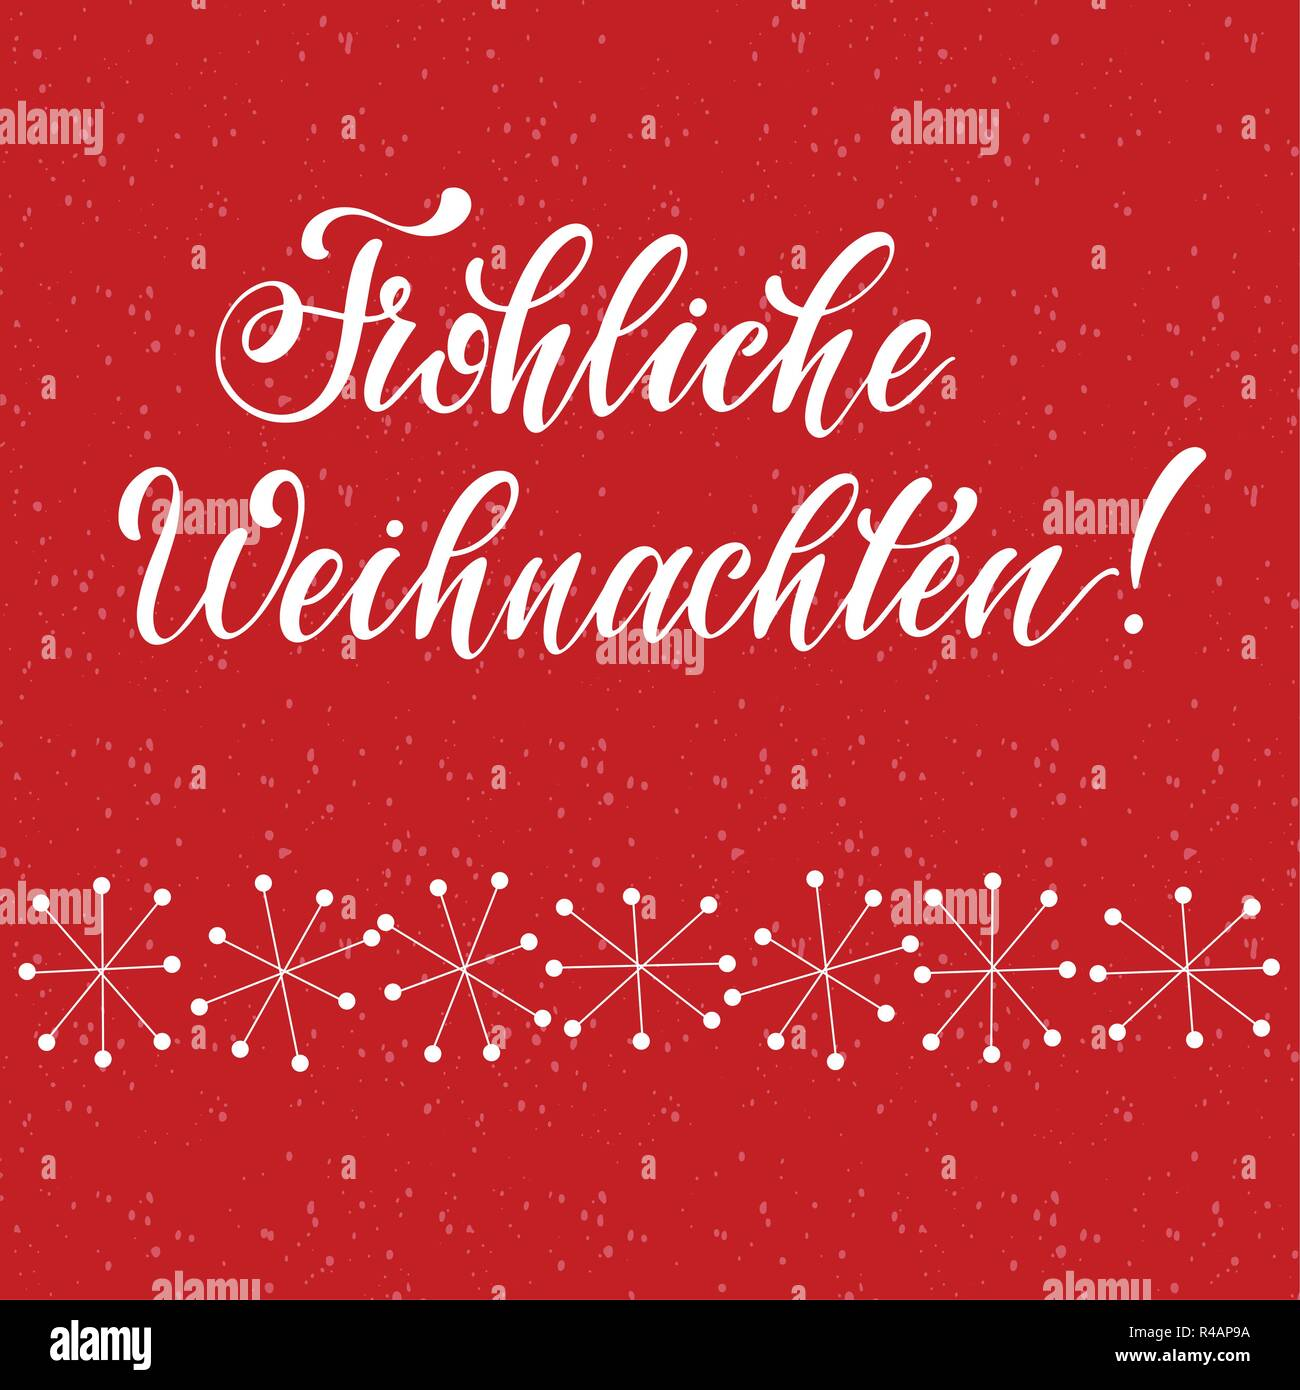 E Cards Weihnachten.Merry Christmas Lettering On German Language Elements For